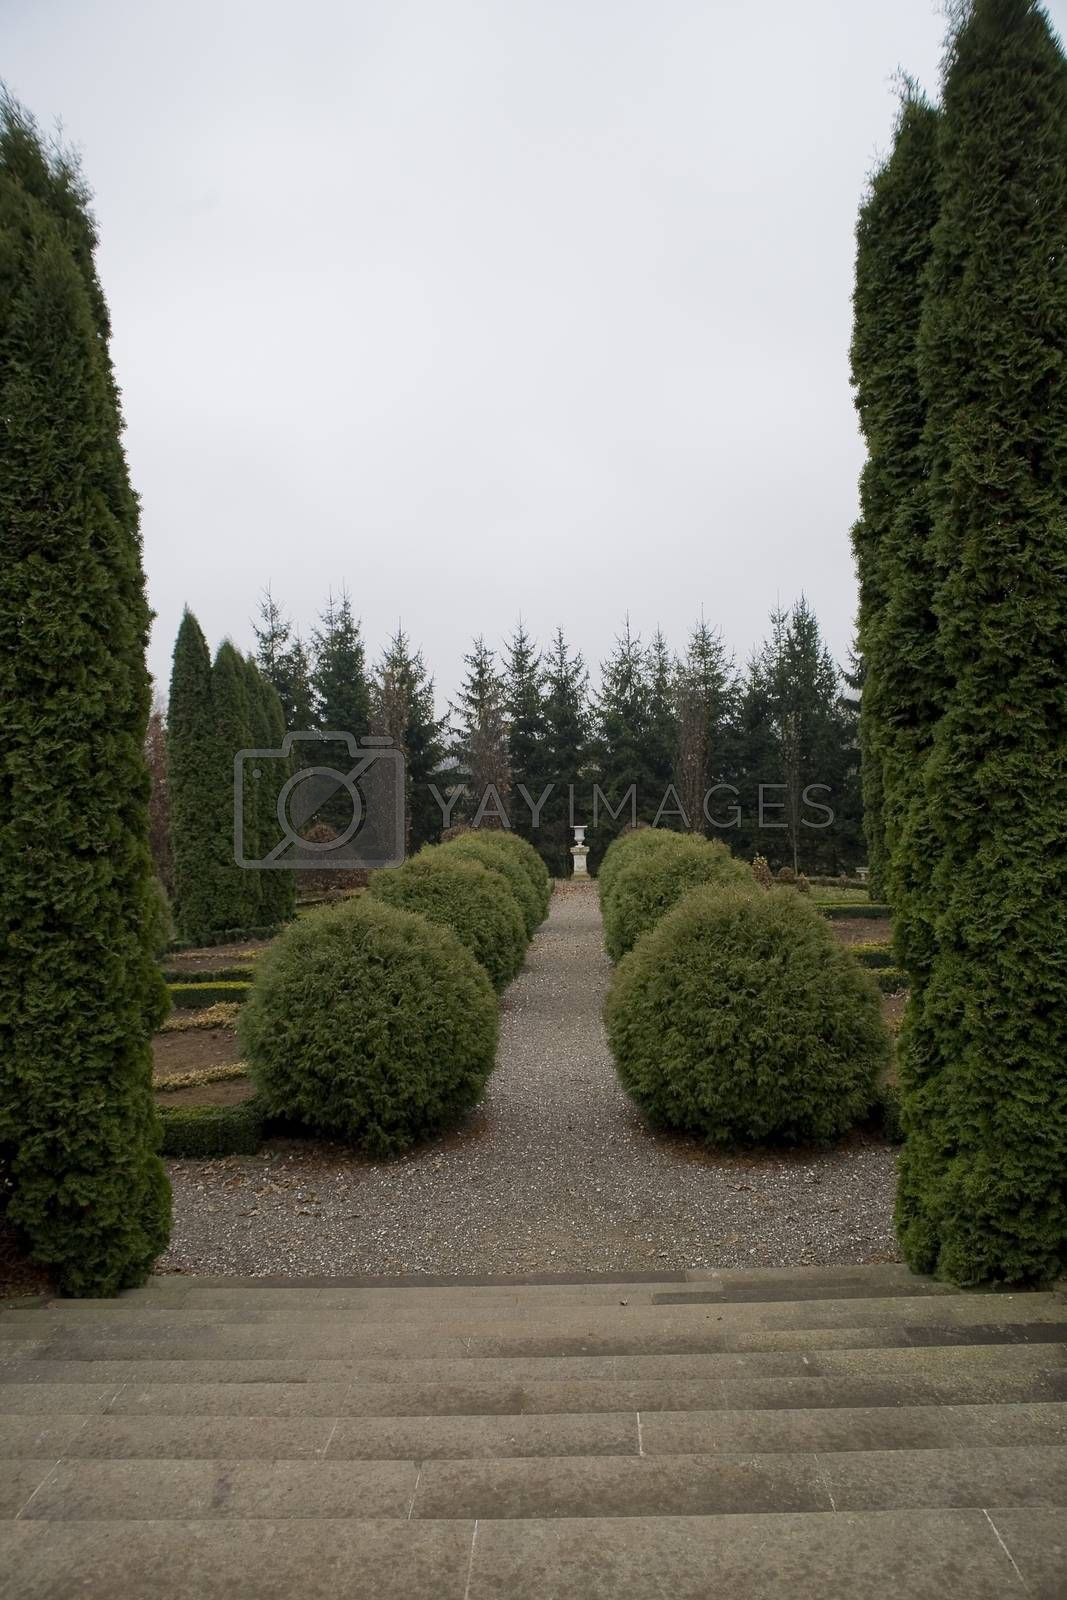 Royalty free image of historic park with a path among ornamental evergreen shrubs on a by Lukrecja